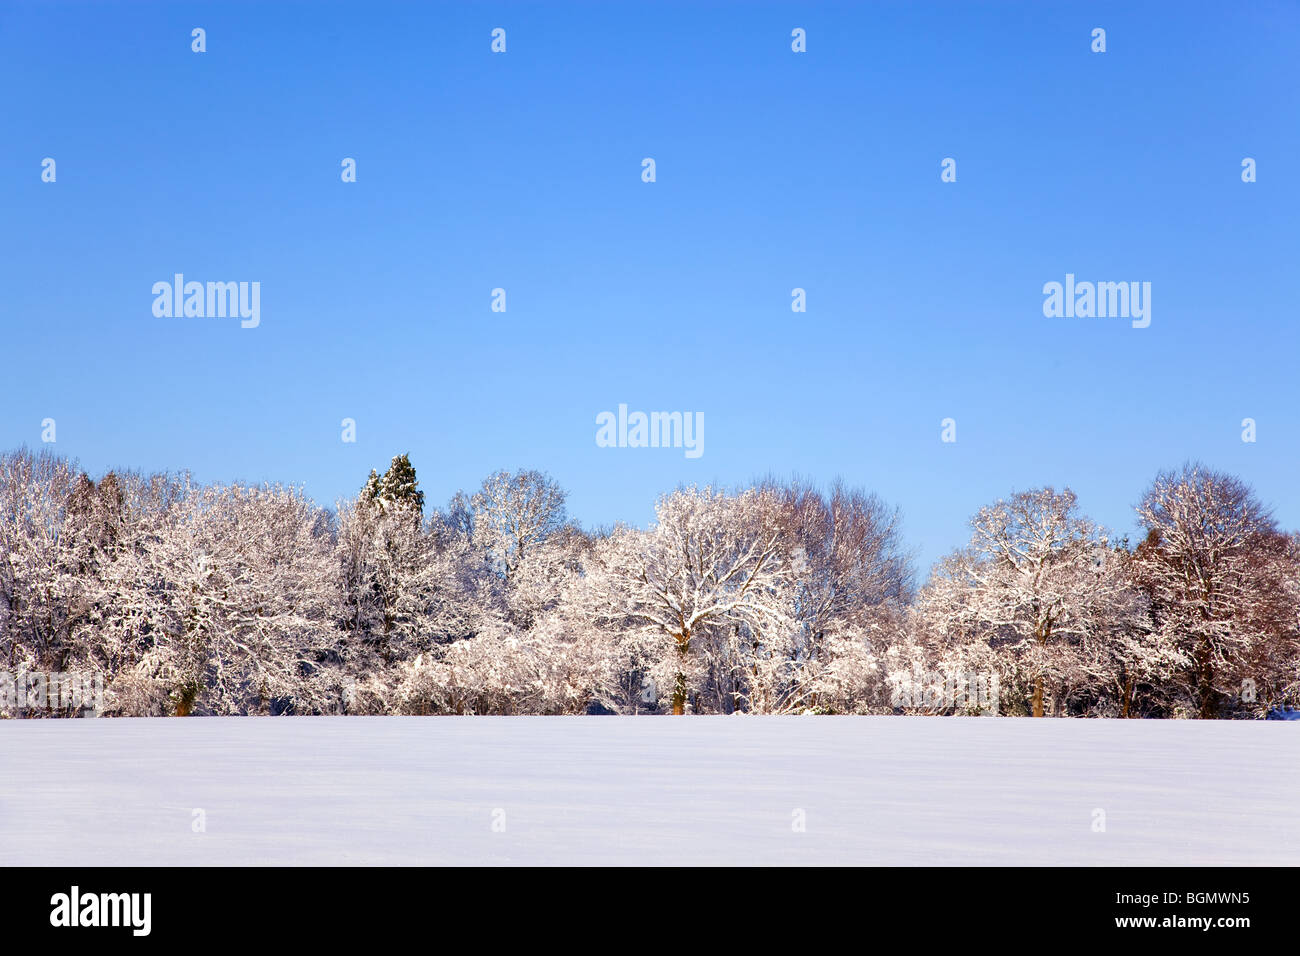 Landscape photo of a field and trees covered in fresh snow with a clear blue sky. - Stock Image